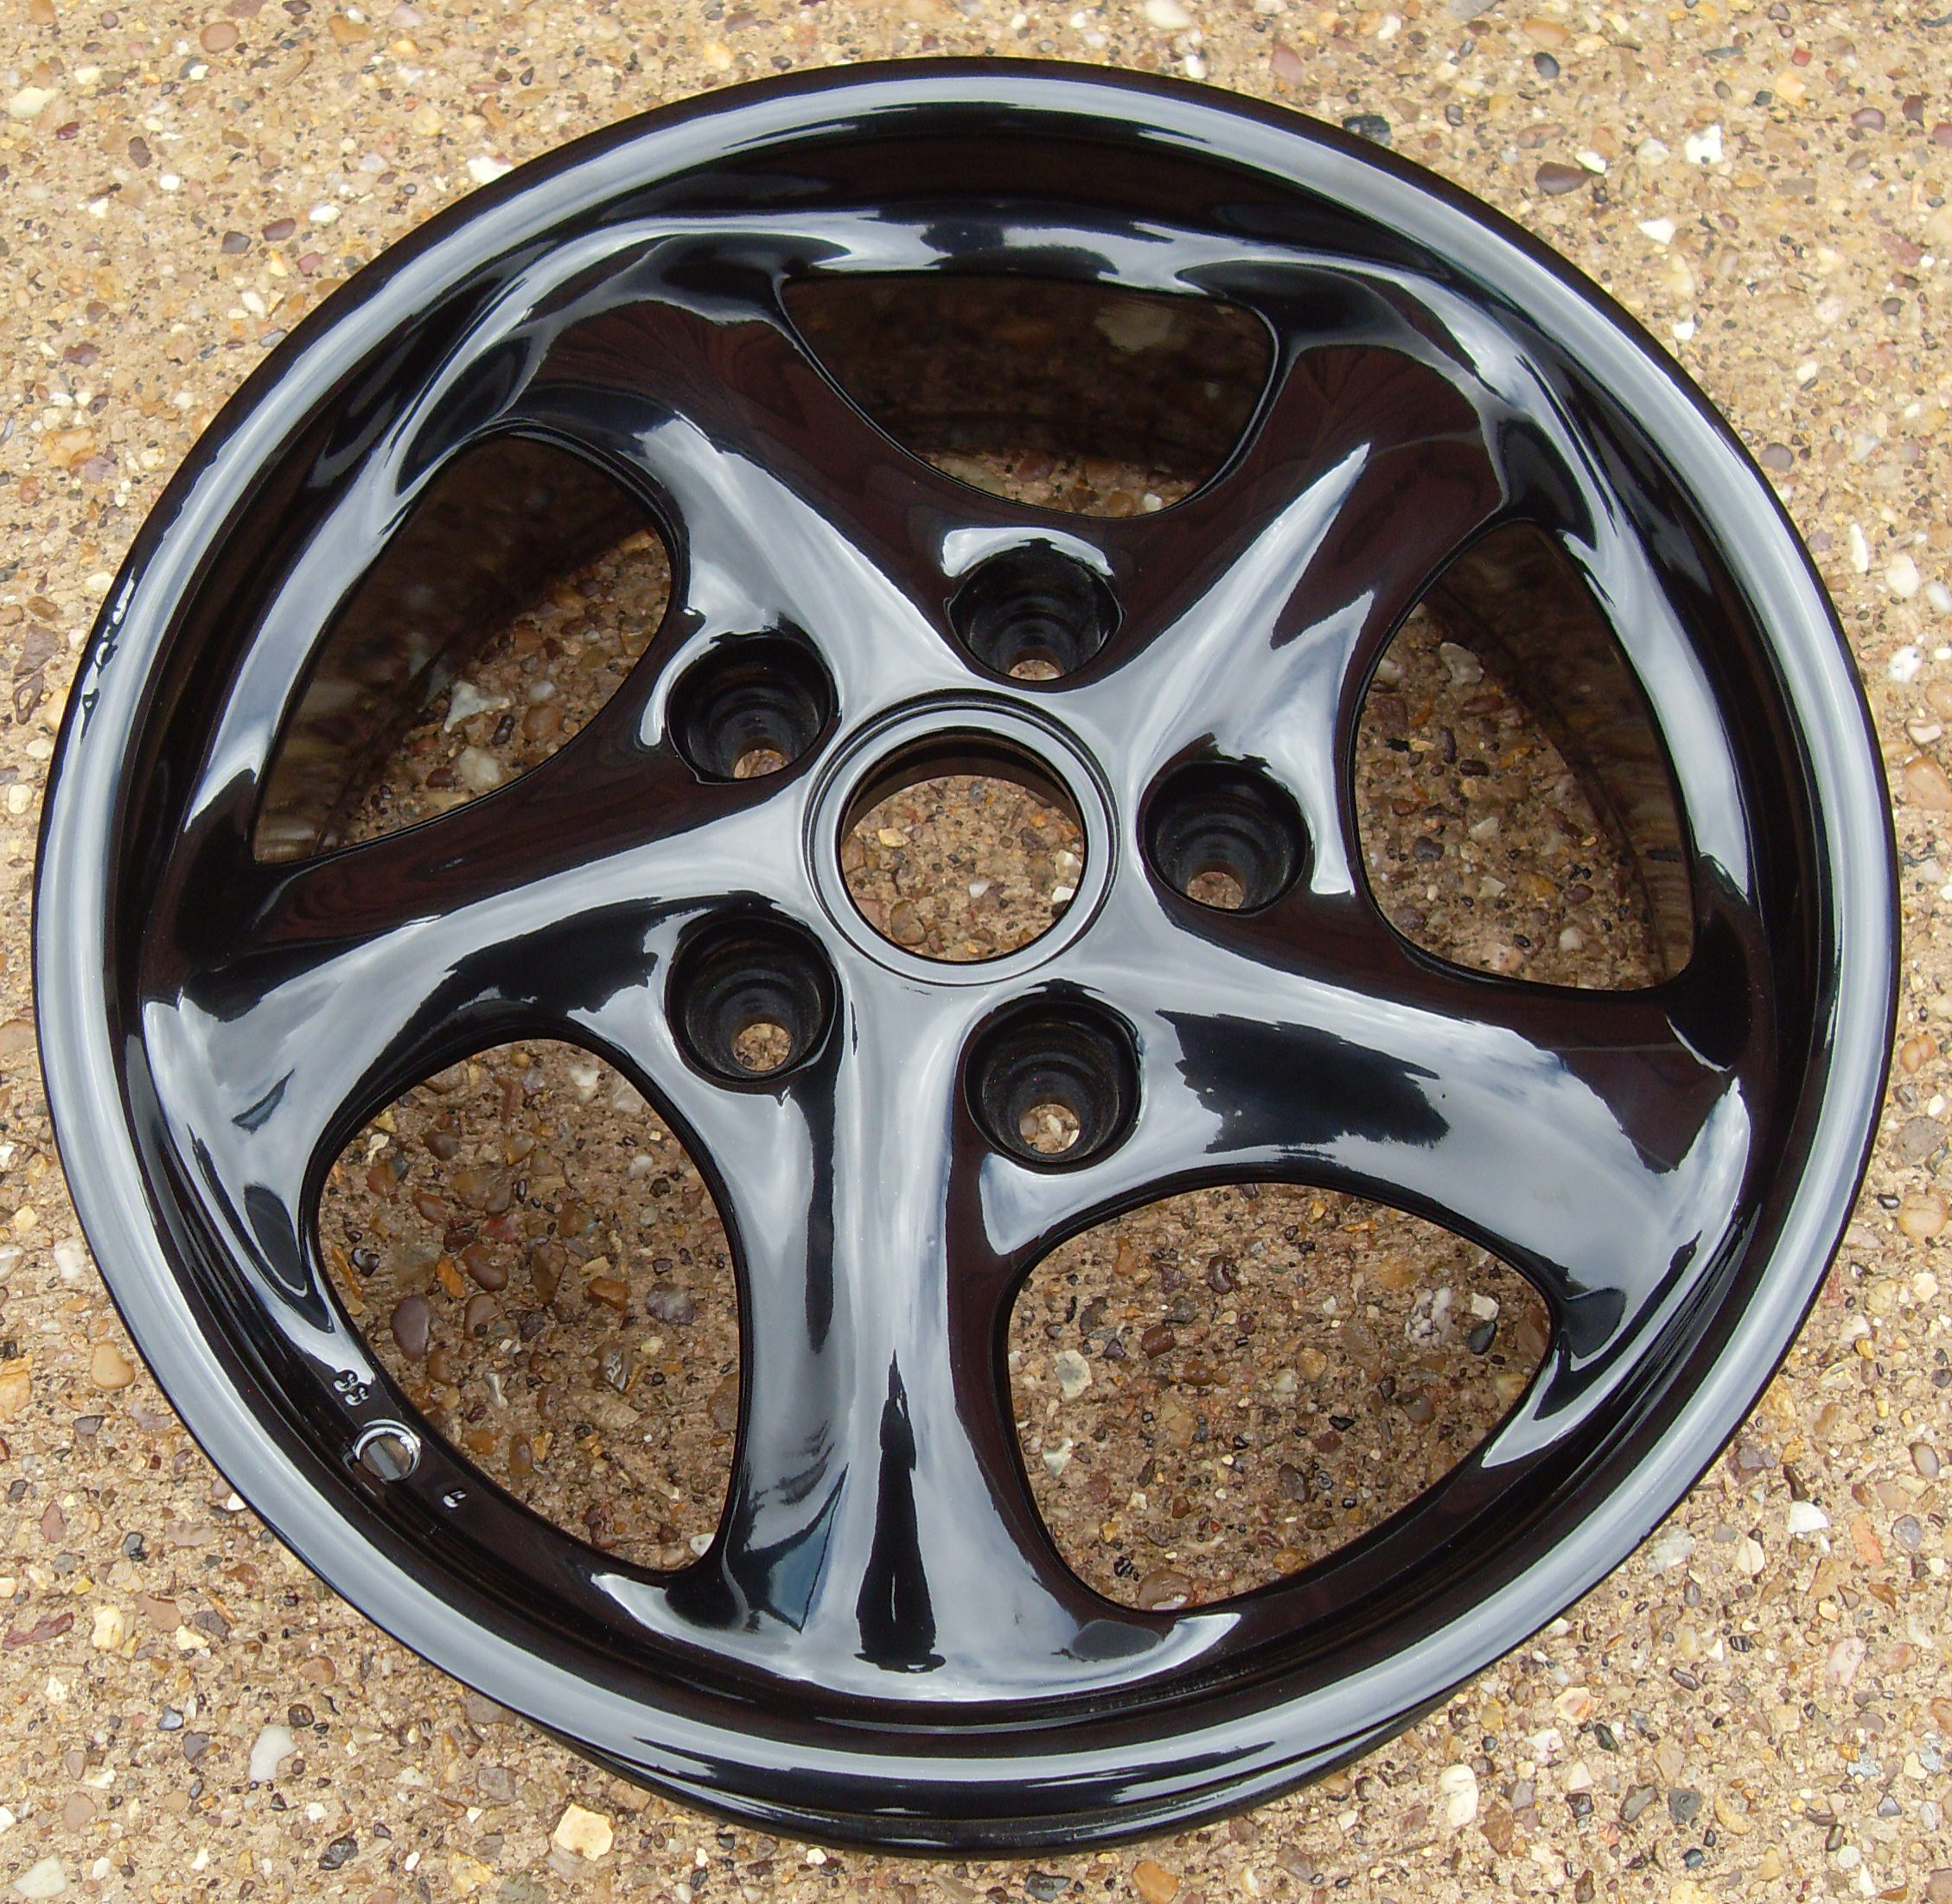 Porsche 911 Wheels Refurbished In Gloss Black For Sale